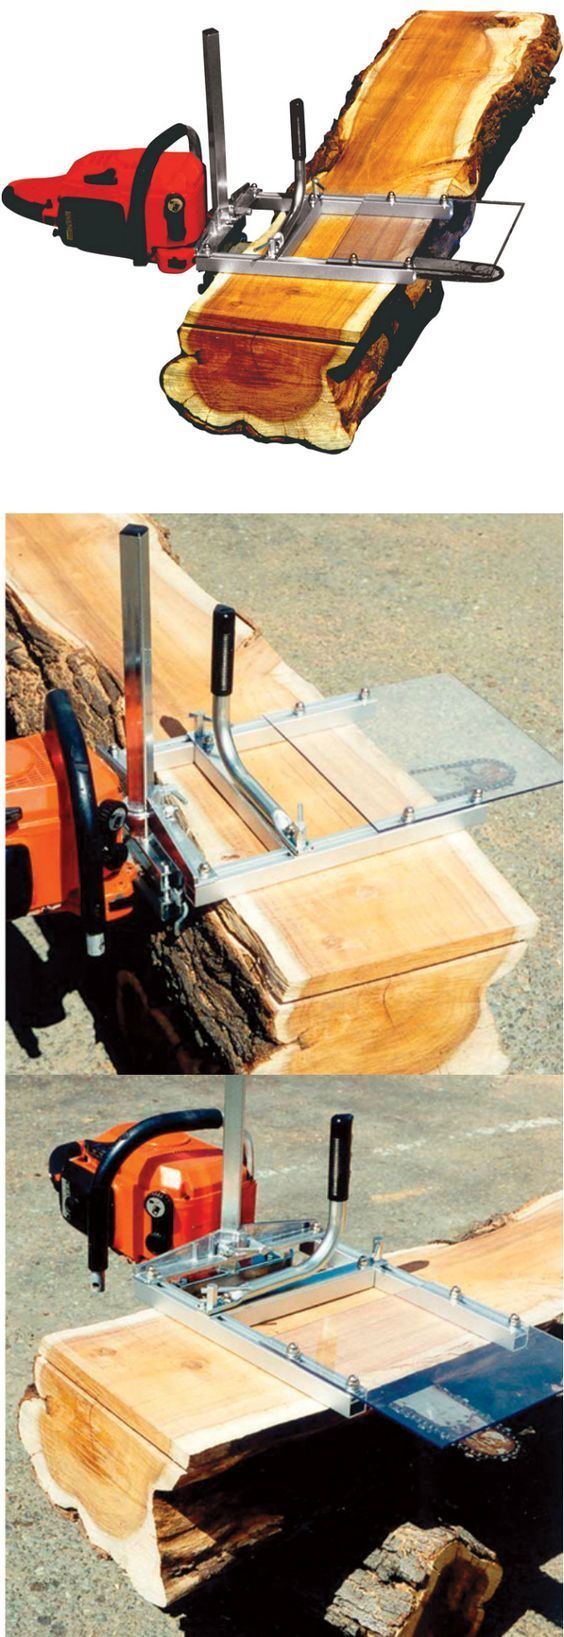 Granberg Chain Saw Mill - Cut Your Own Lumber Like A Boss - Woodworking tools.